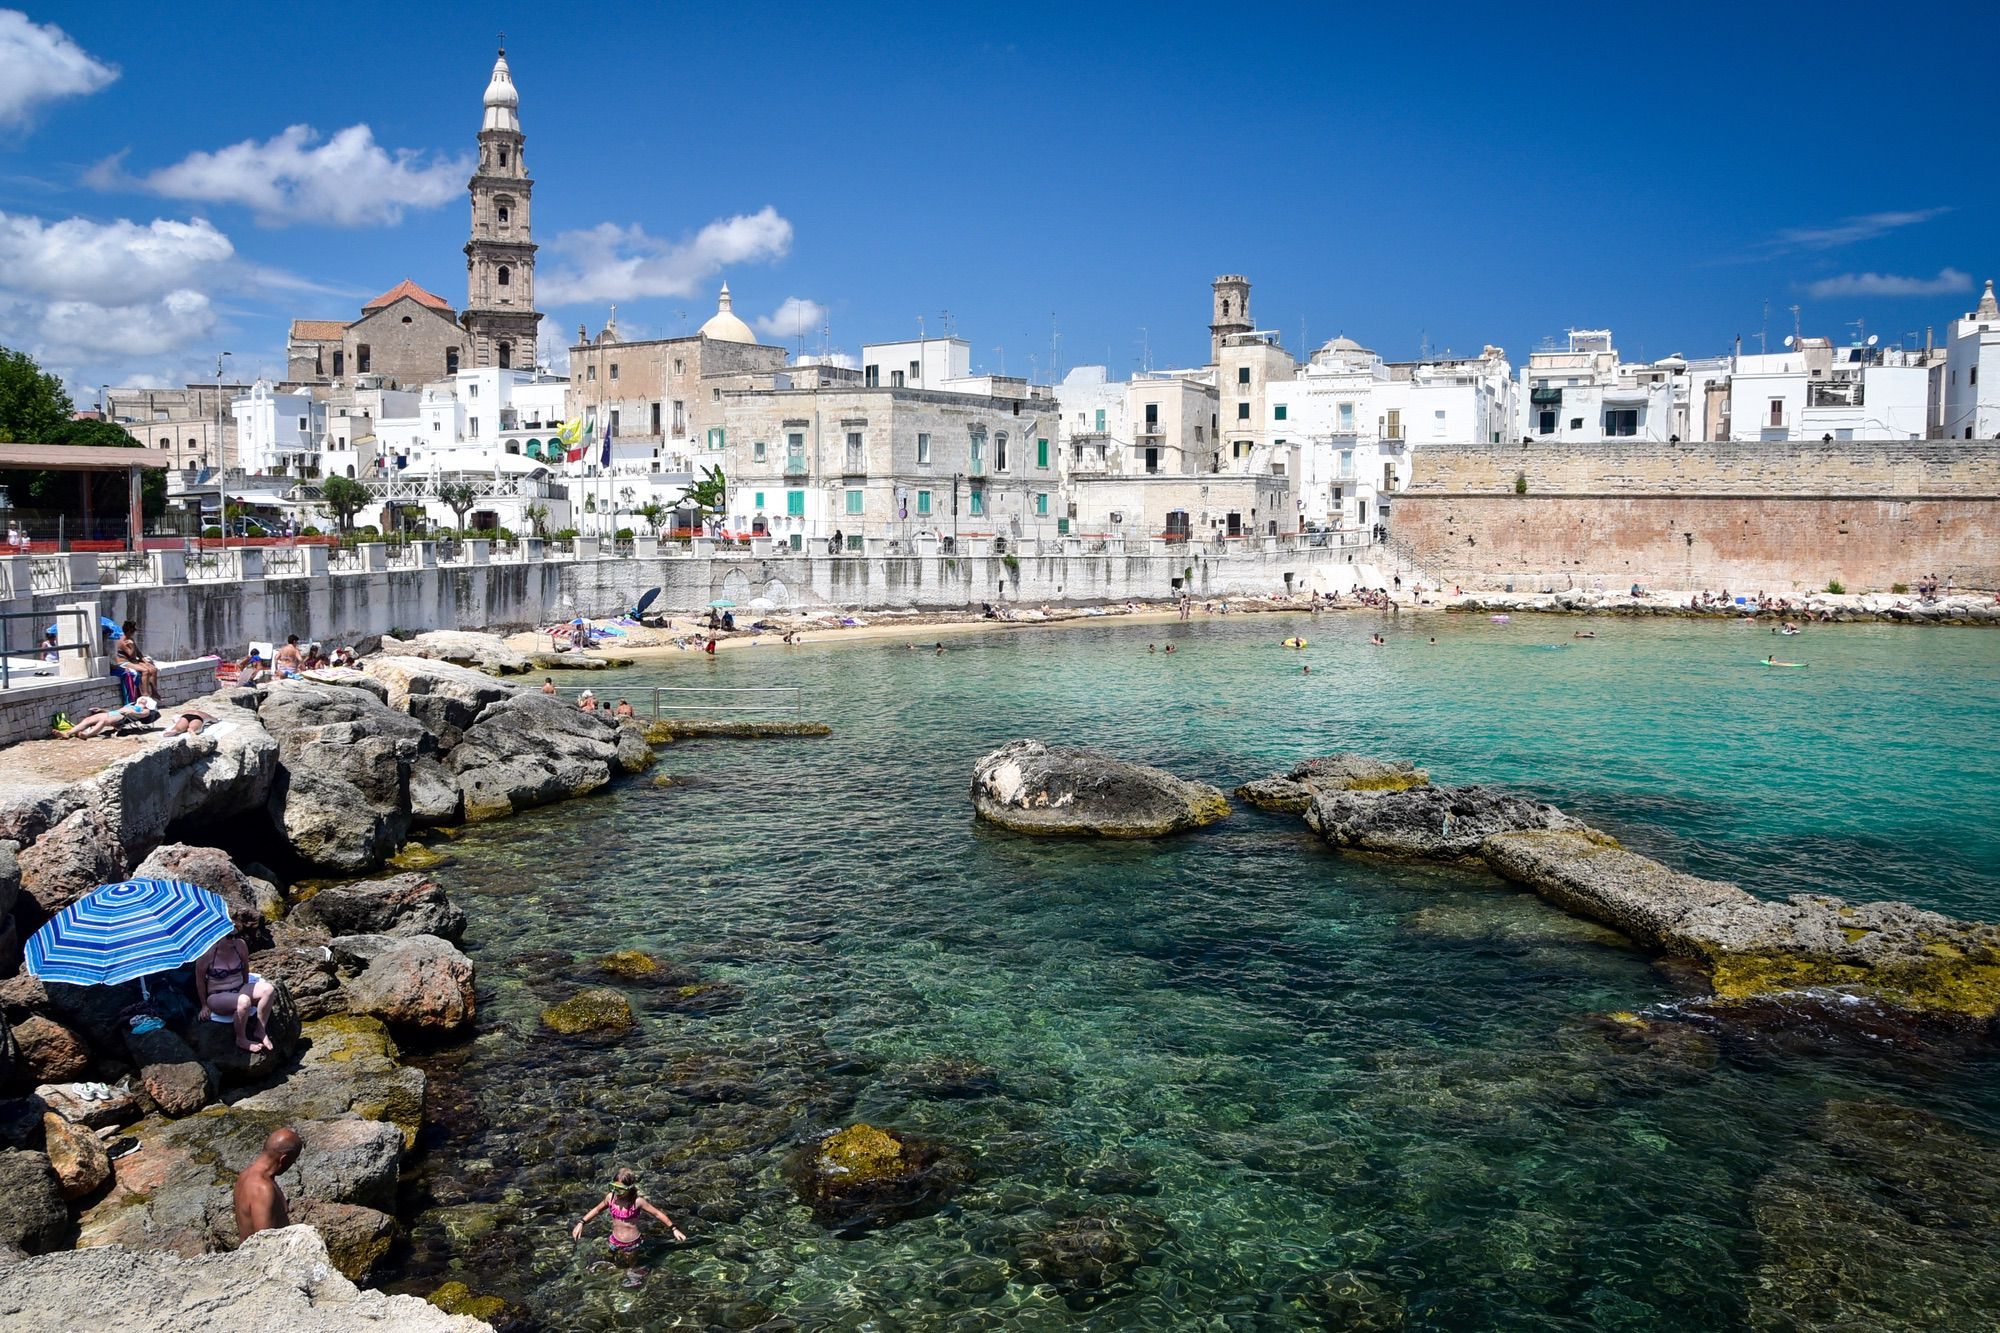 Visit Monopoli from the sea